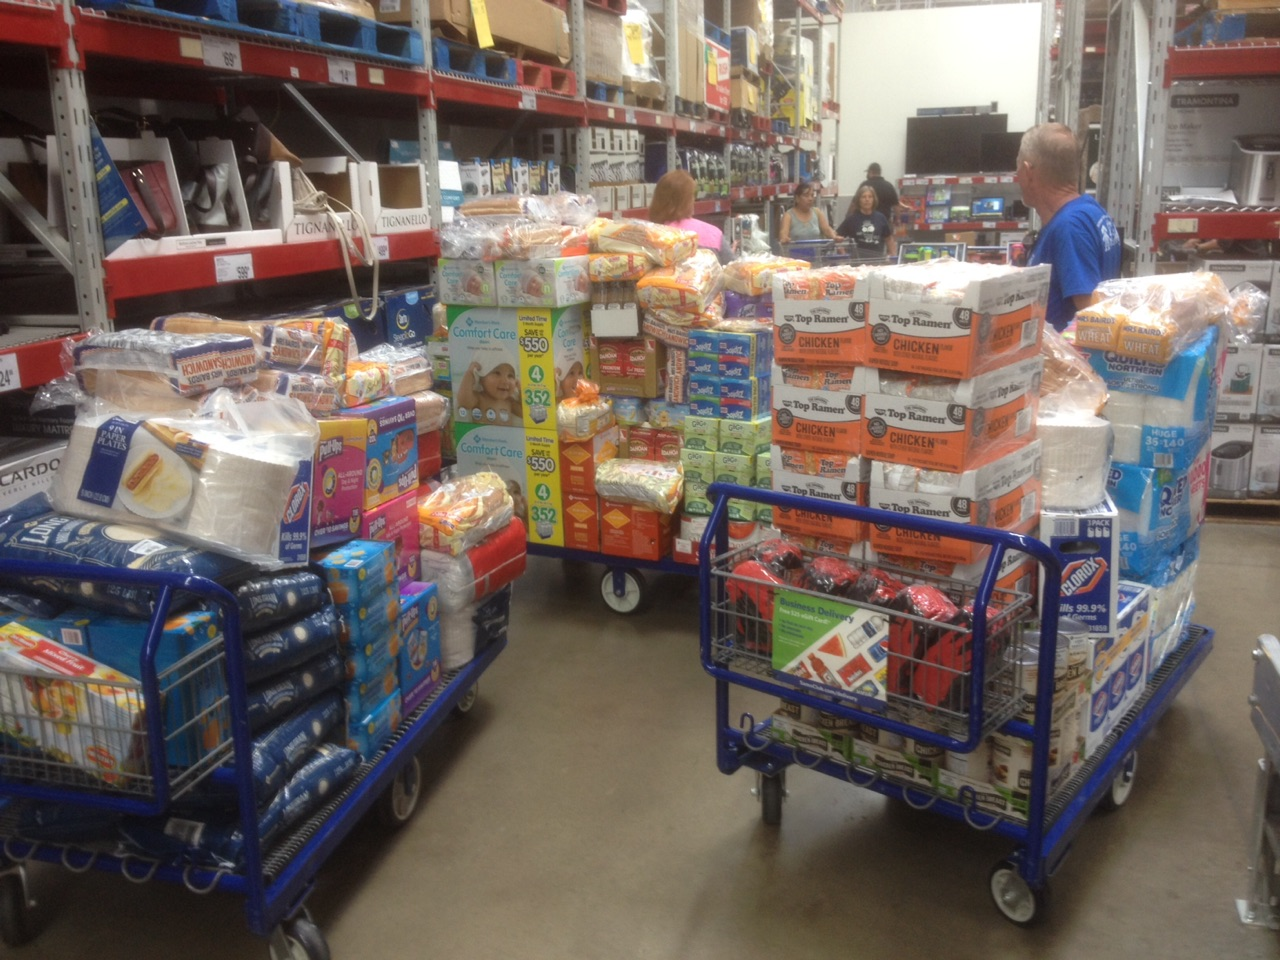 Kiwanis Clubs get supplies to send to Texas